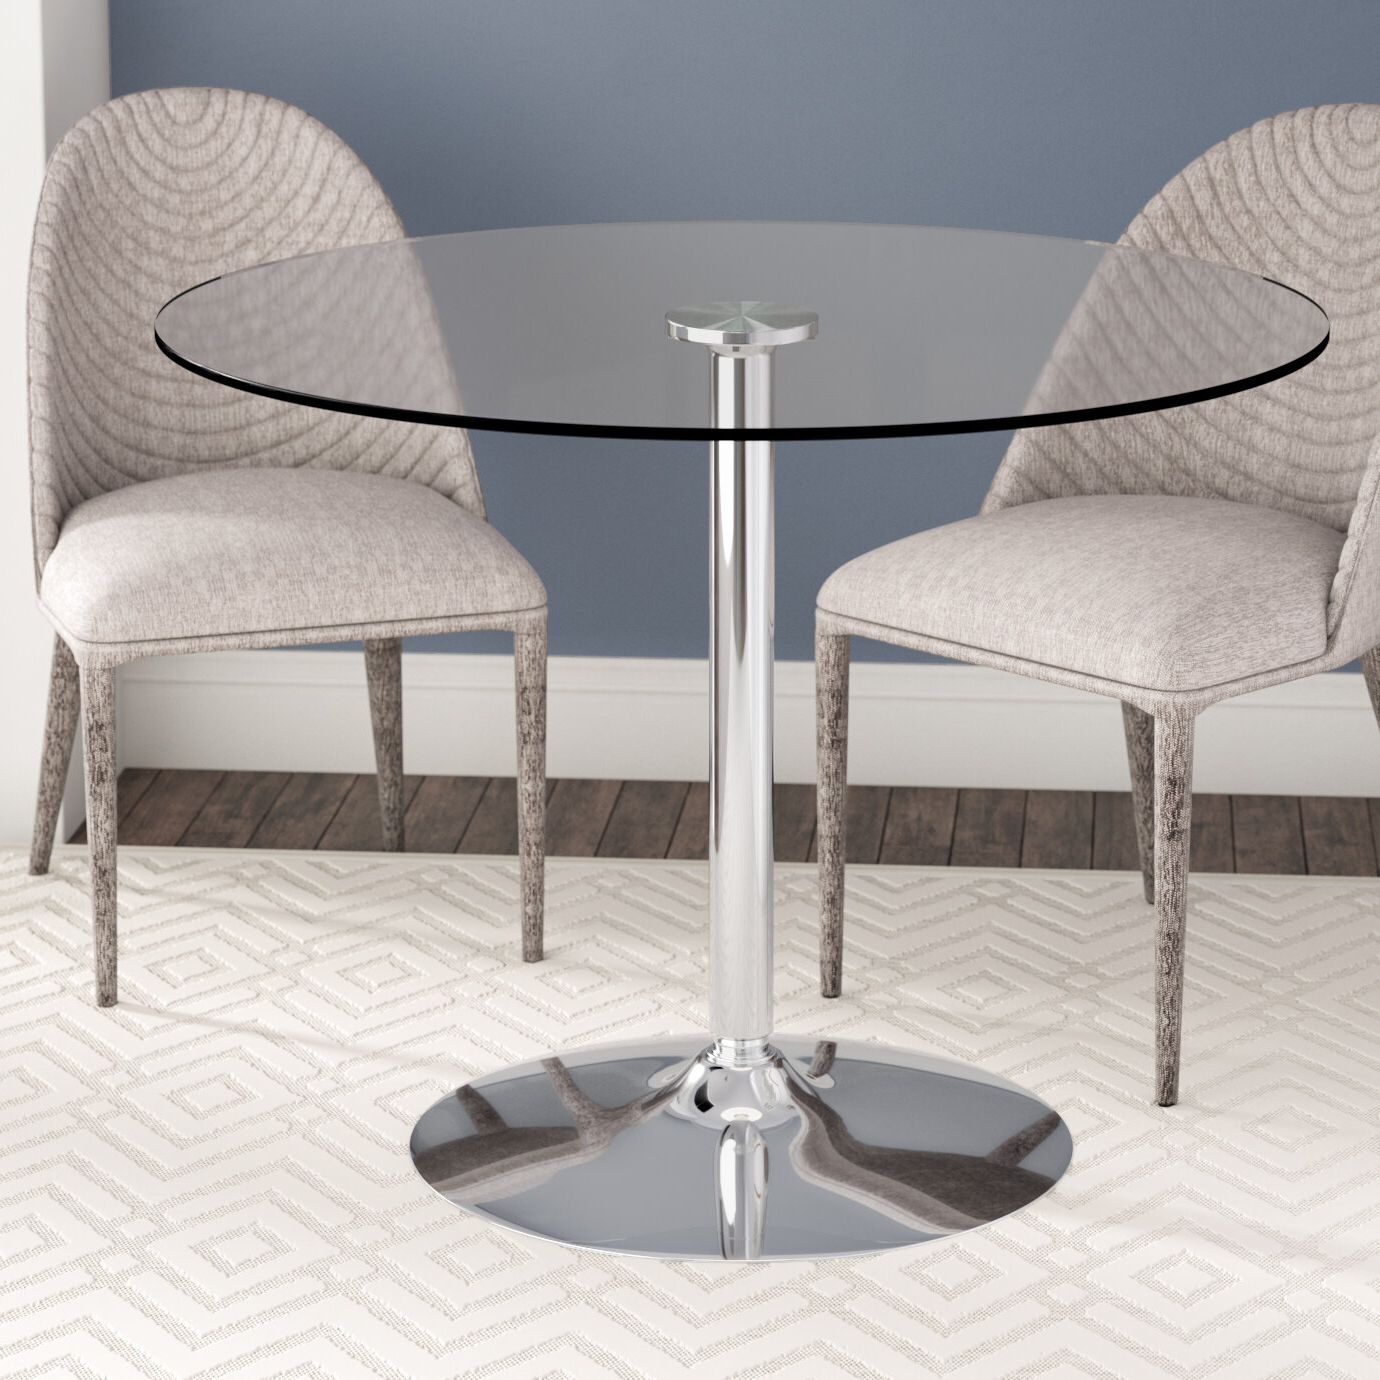 Chrome Contemporary Square Casual Dining Tables Intended For Famous Wade Logan Cavell Round Glass Dining Table & Reviews (Gallery 26 of 30)